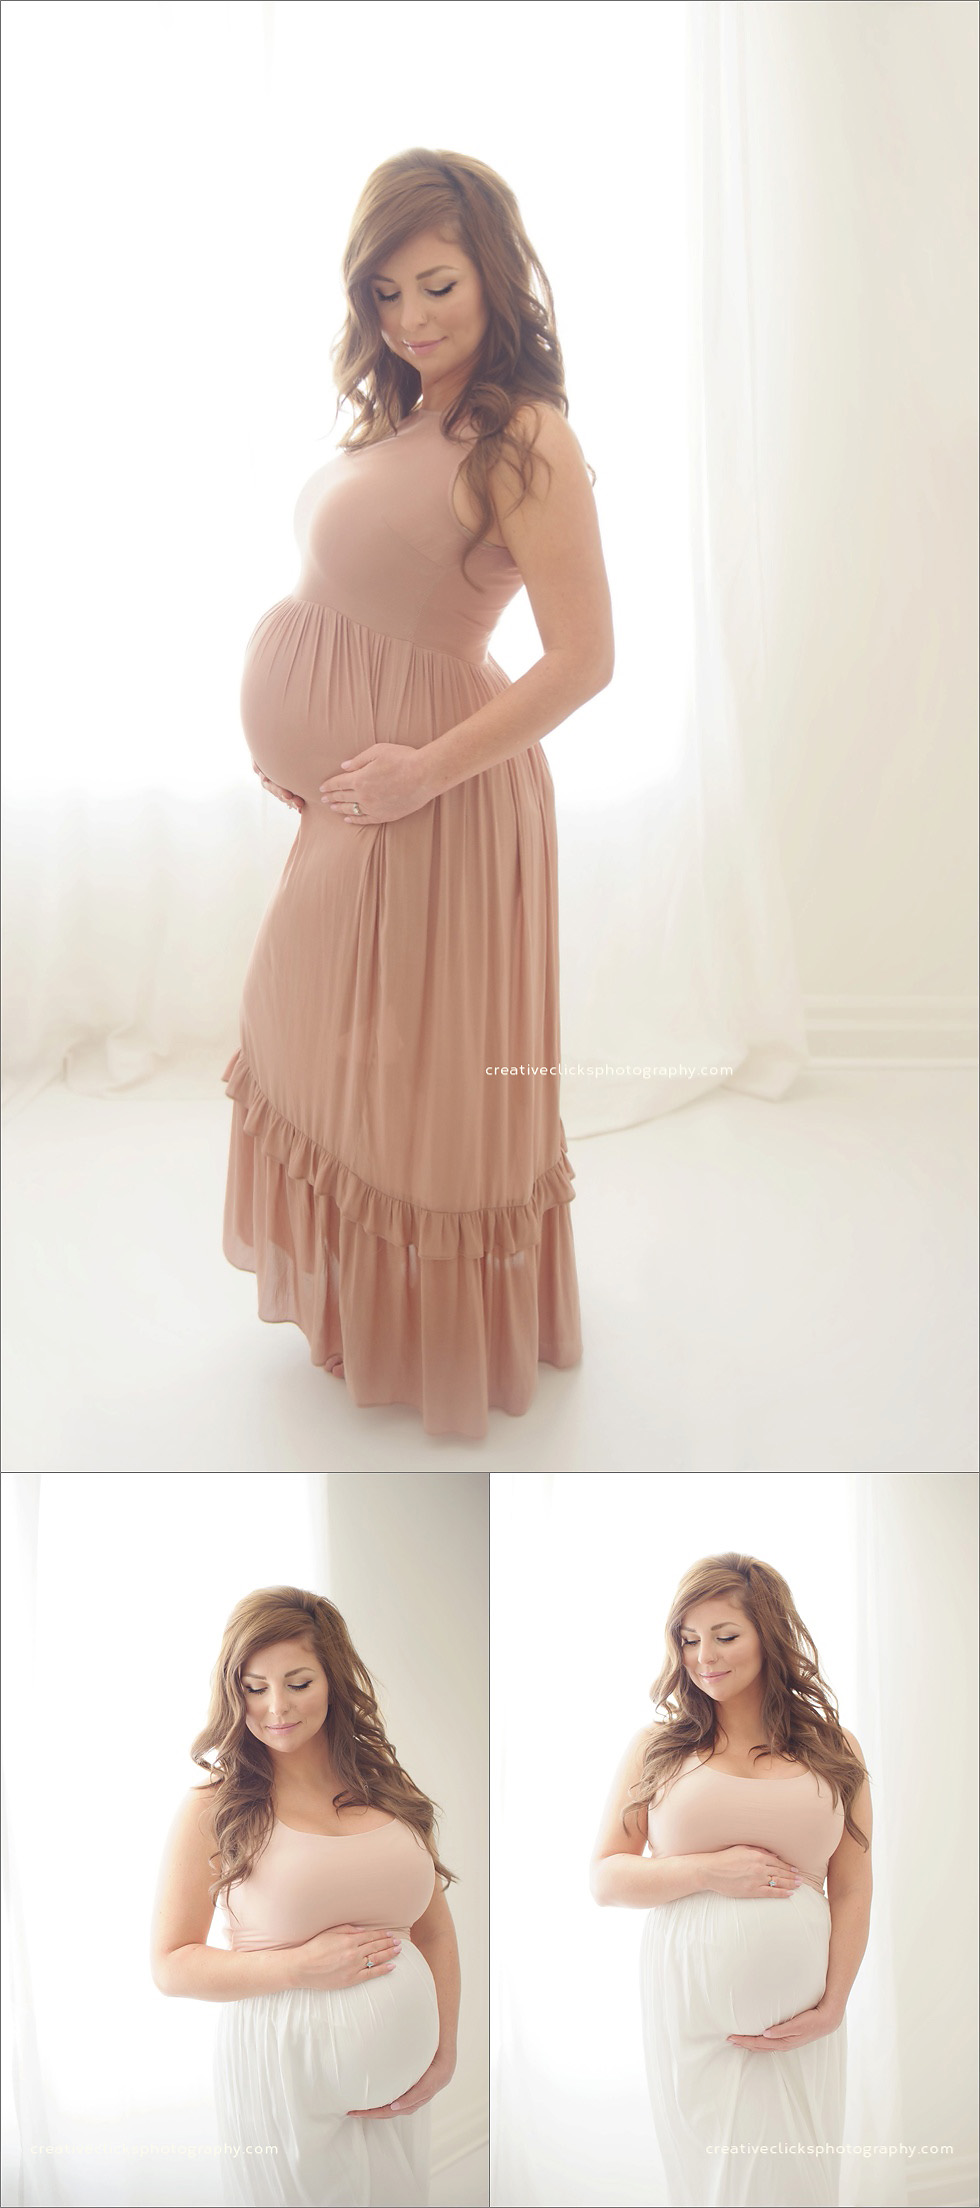 maternity session in Niagara, ON studio